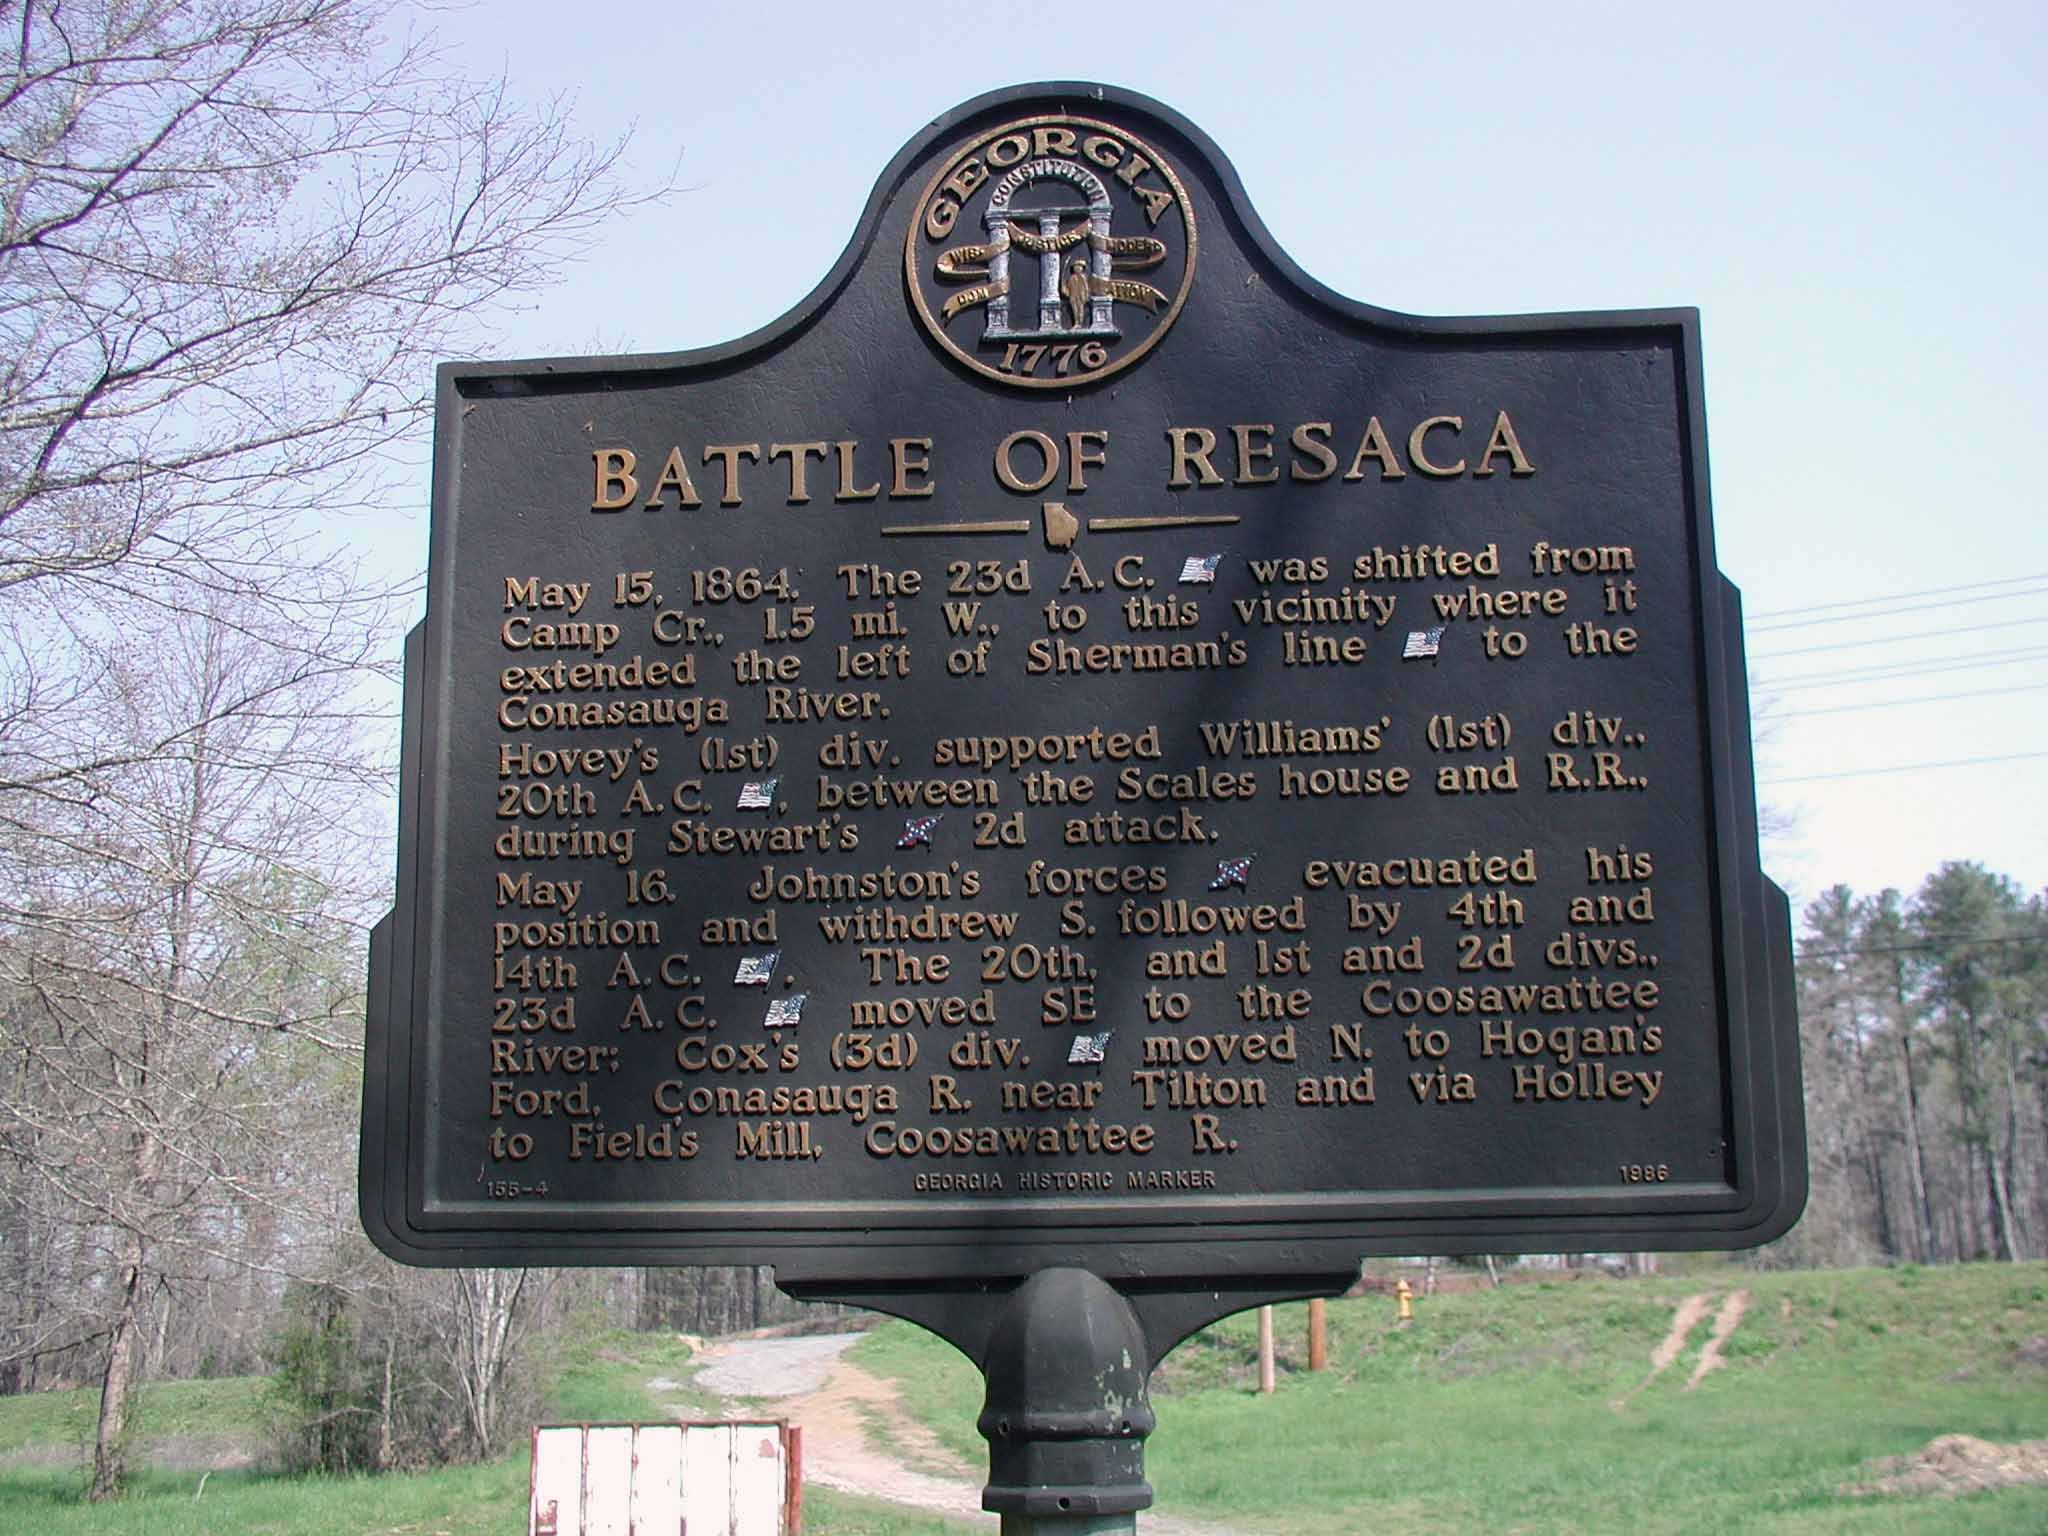 This historical marker was dedicated in 1986 and is located just off the main highway.